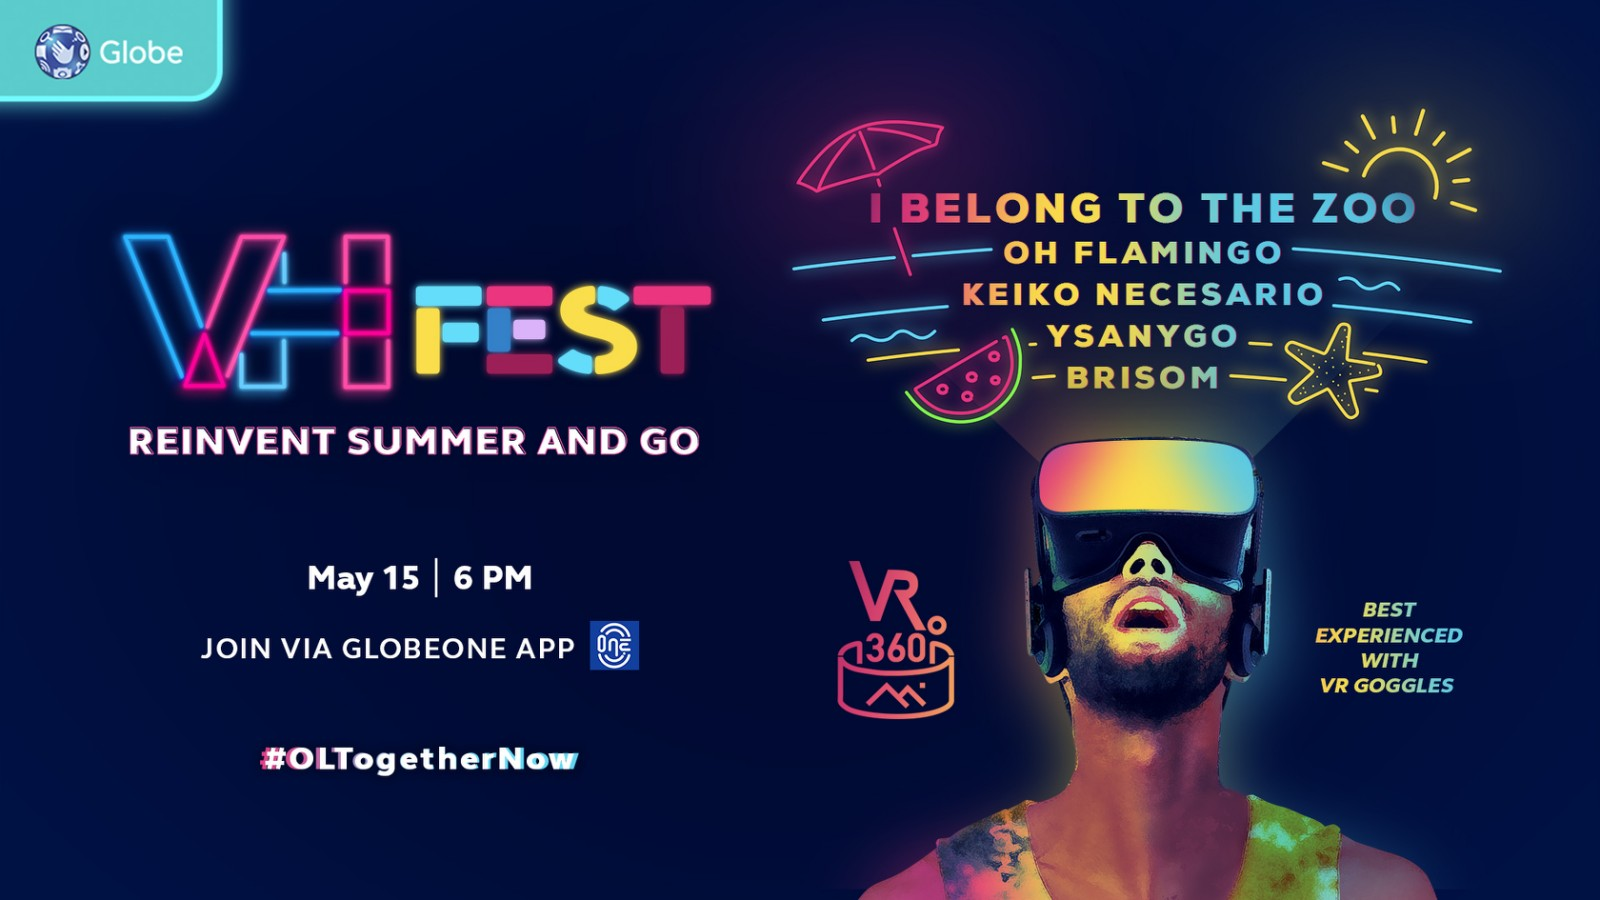 Globe Virtual Hangouts presents VH Fest: Reinvent Summer and Go - a celebration of reinvention through music